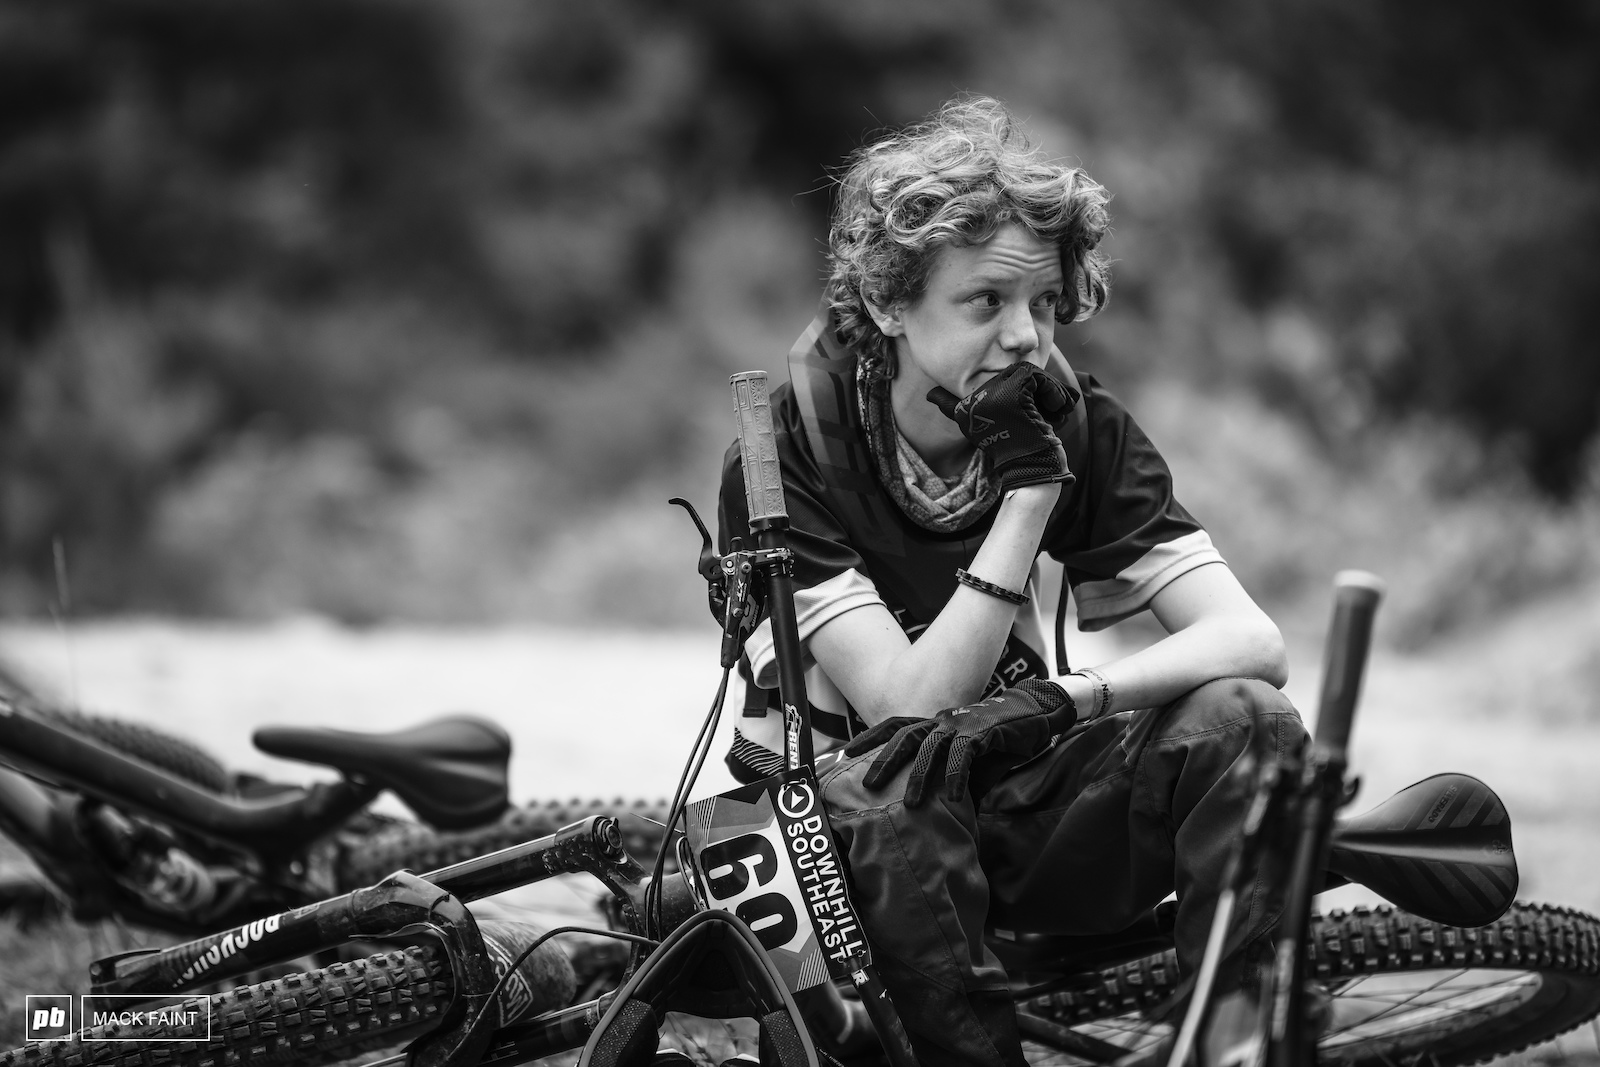 Owen trying to mentally dial in his lines before his run he ended up 9th in a stacked Cat 2 3 Men 0-14 class.